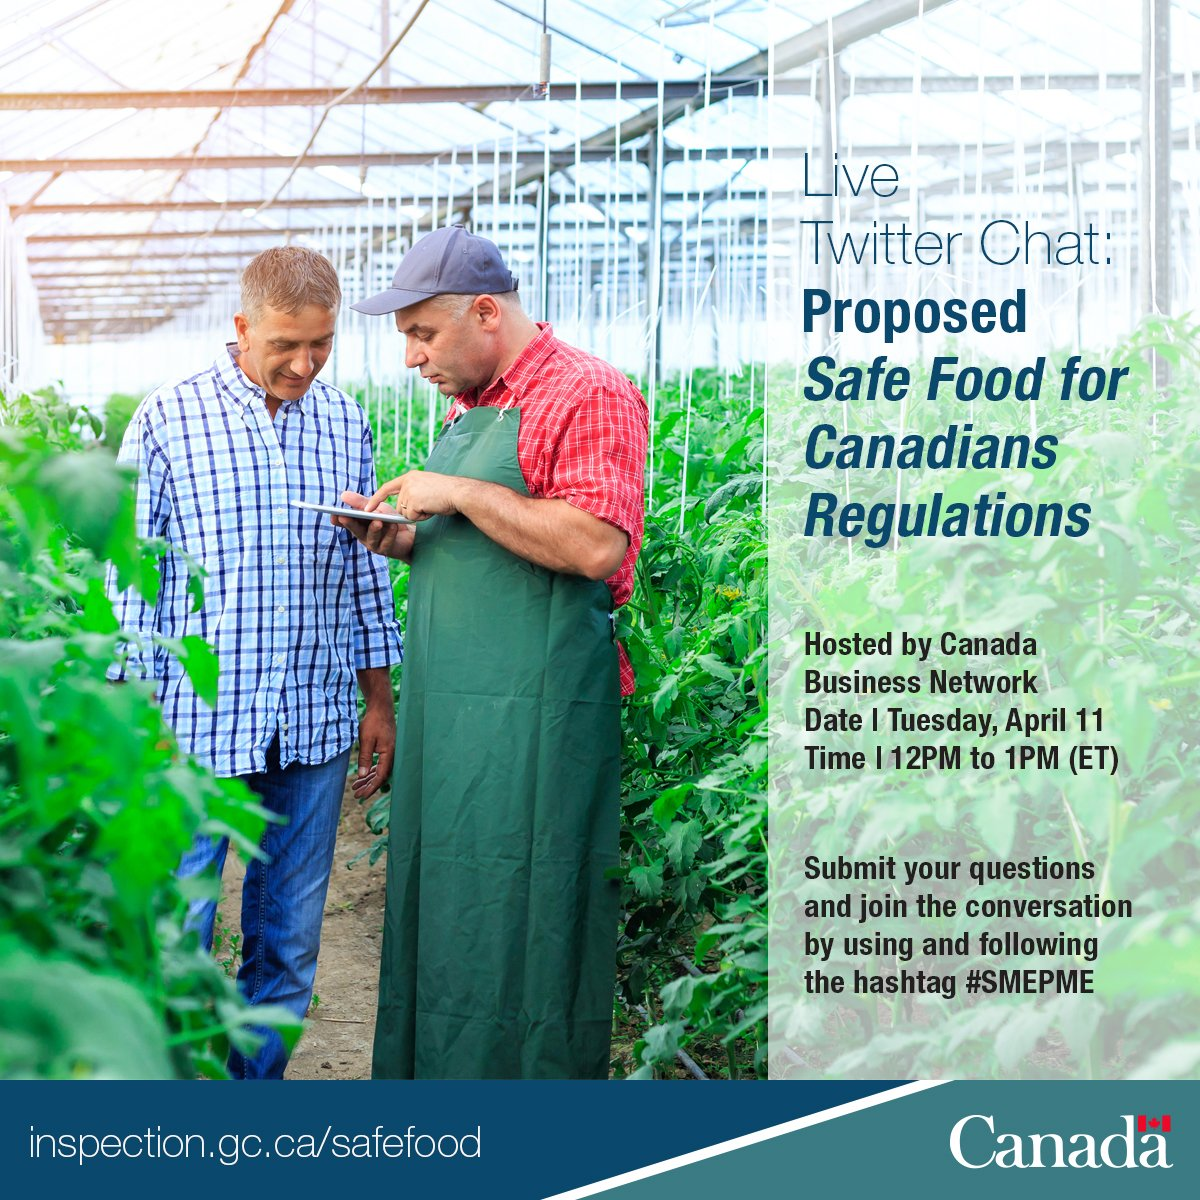 Live Q&As on April 11: Join the discussion on #SafeFoodCan regs – Hosted by @canadabusiness #SMEPME https://t.co/zbYj1AE3s0 https://t.co/TfRI8T2NKS